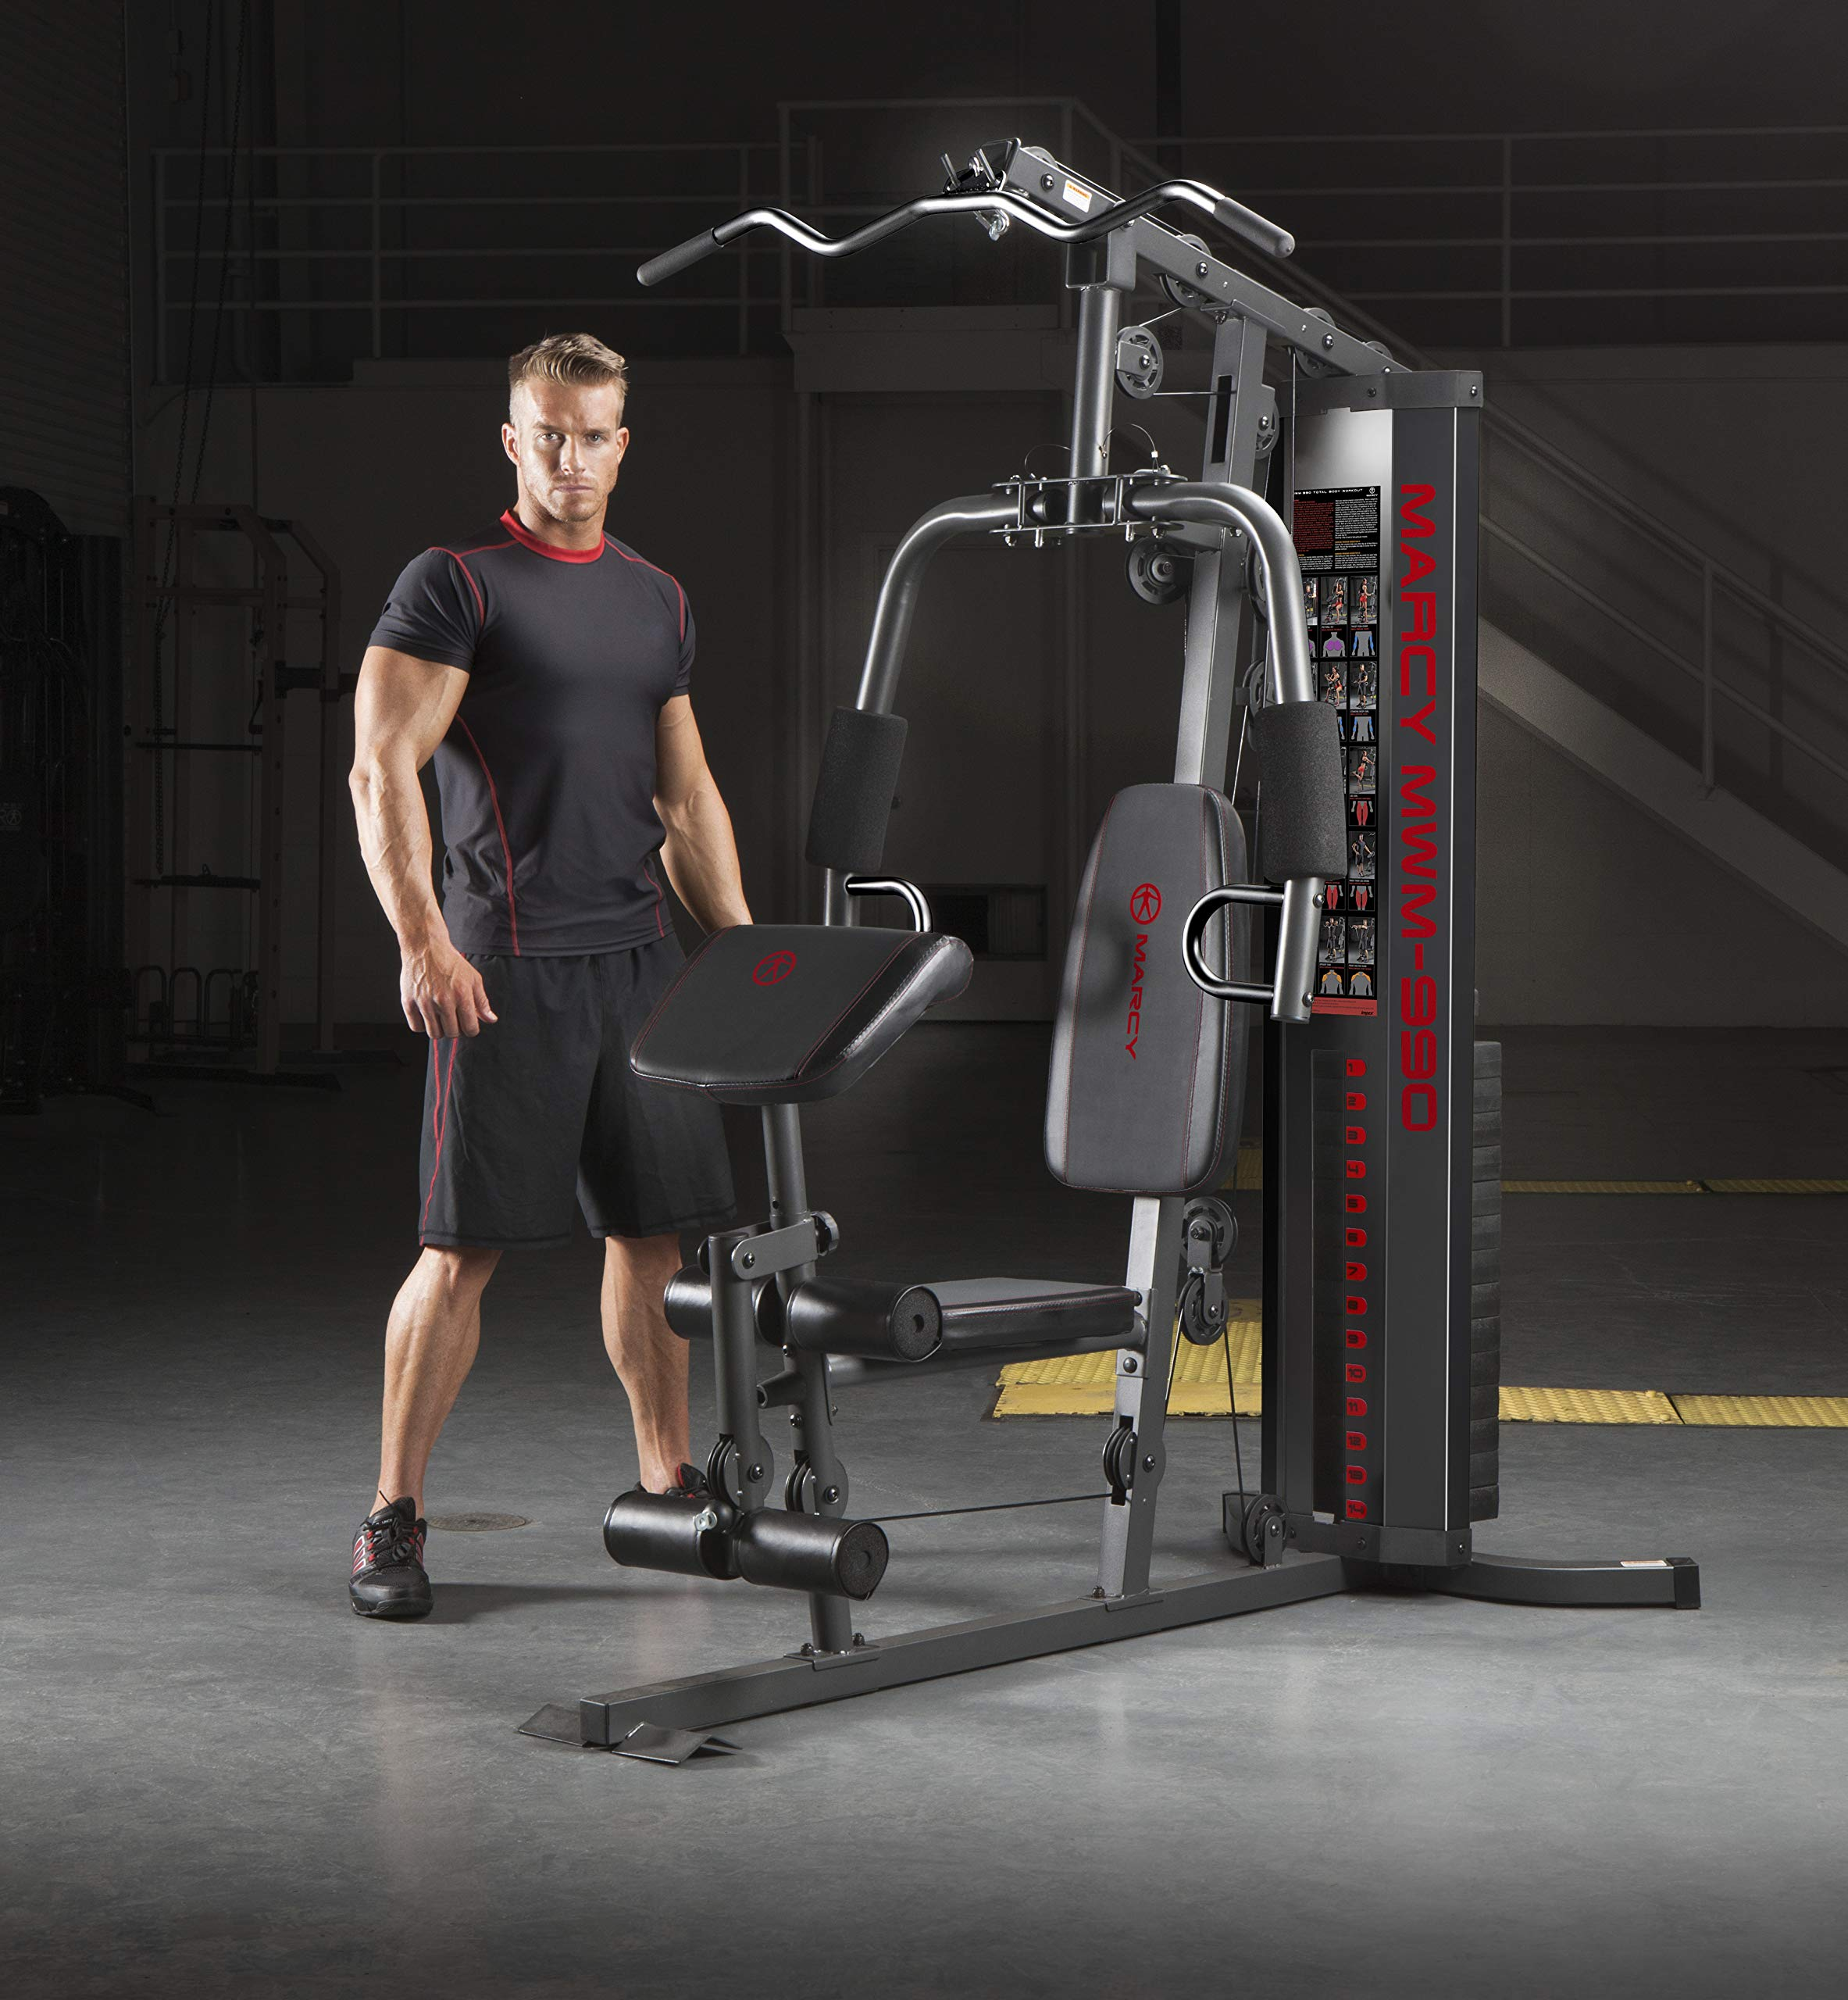 Marcy 150-lb Multifunctional Home Gym Station for Total Body Training MWM-990 by Marcy (Image #4)